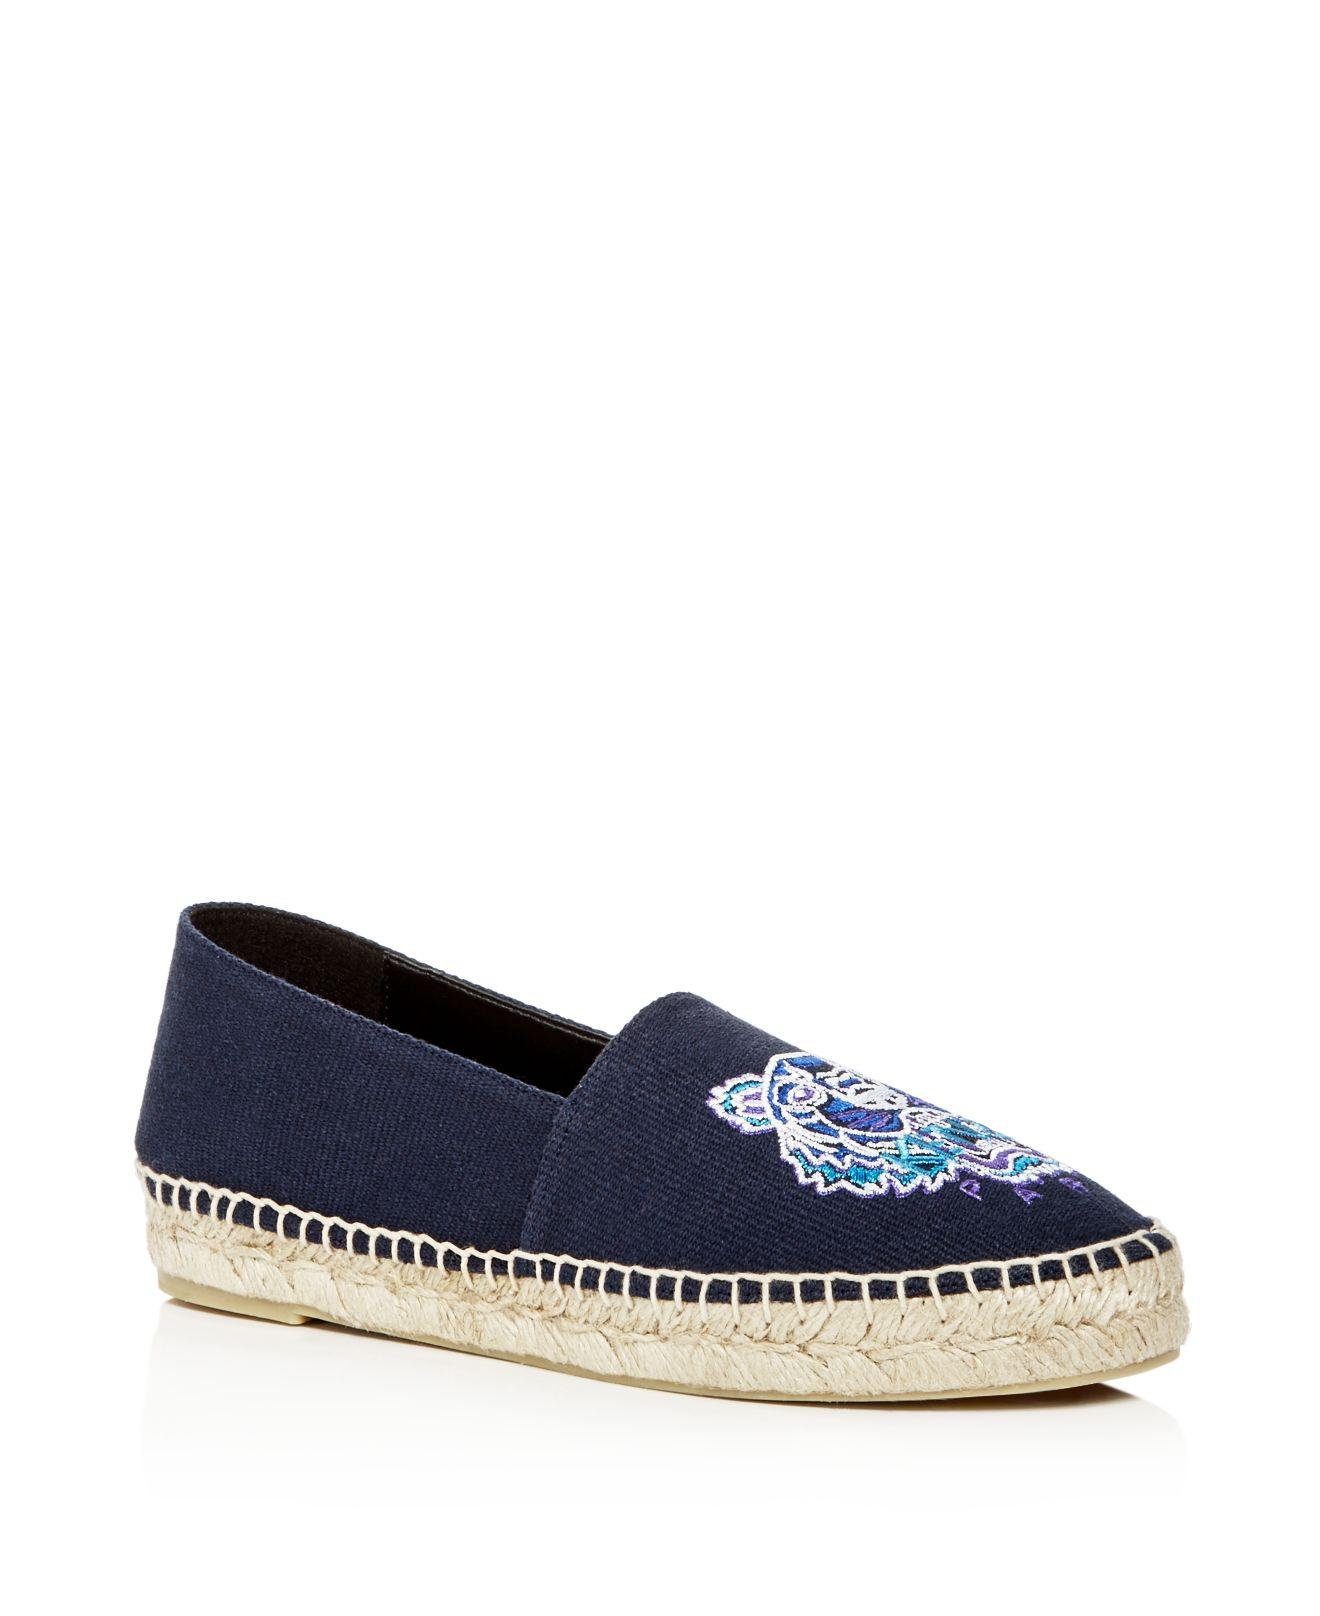 Kenzo Women's Classic Tiger Embroidered Espadrille Flats